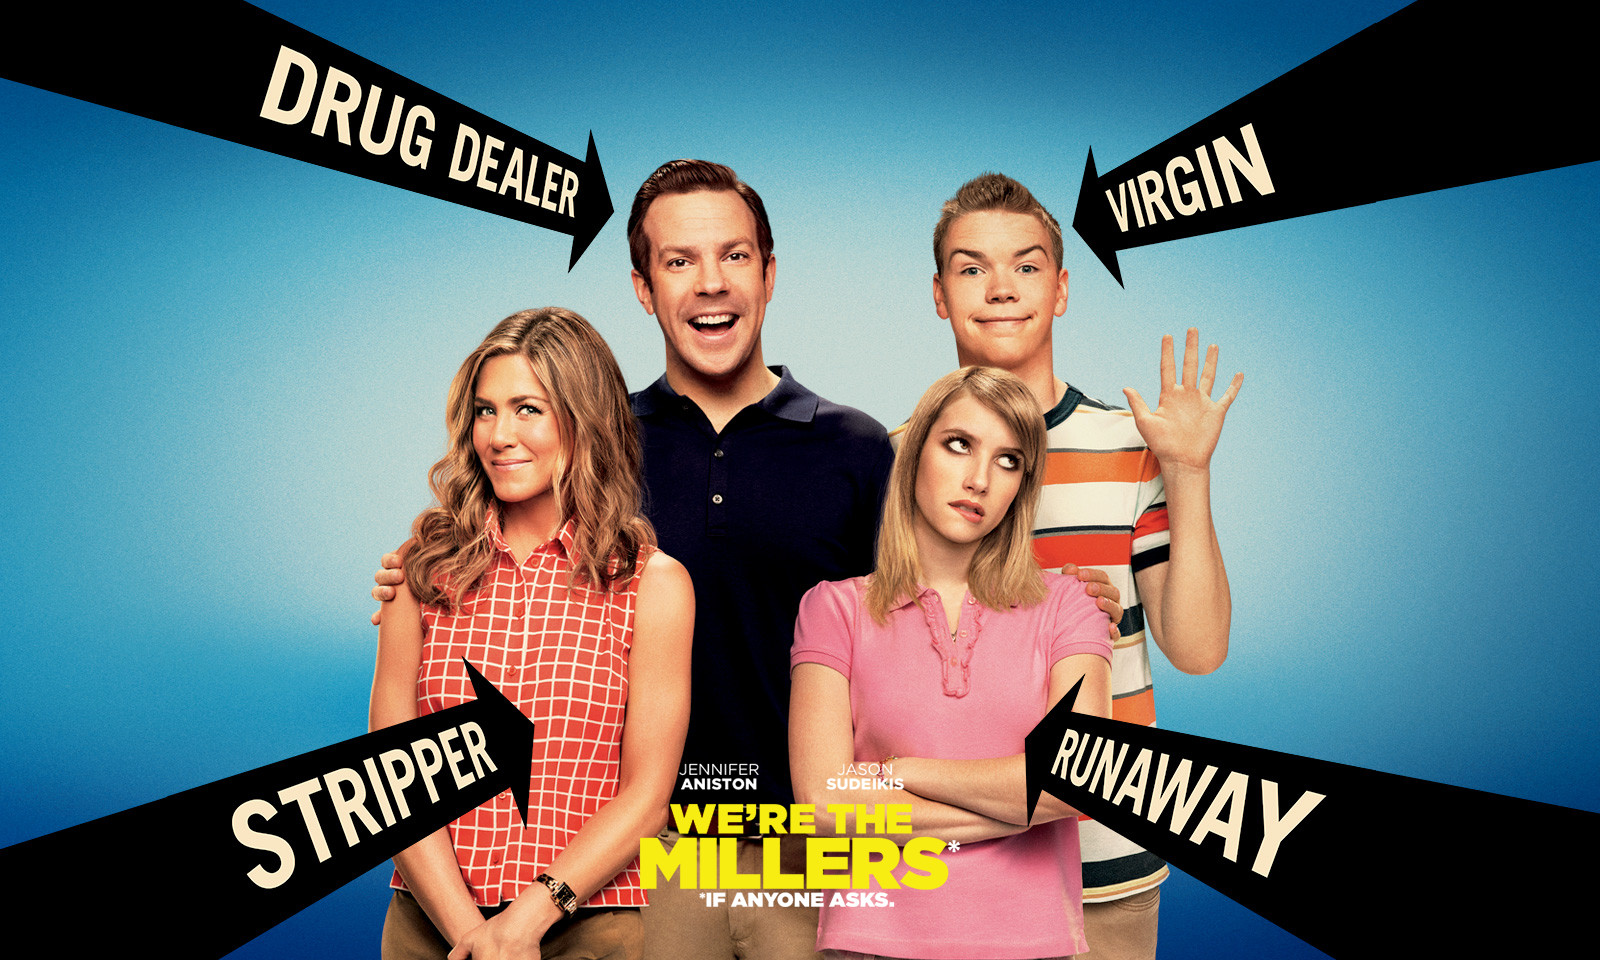 We-re-the-Millers-were-the-millers-35546784-1600-960